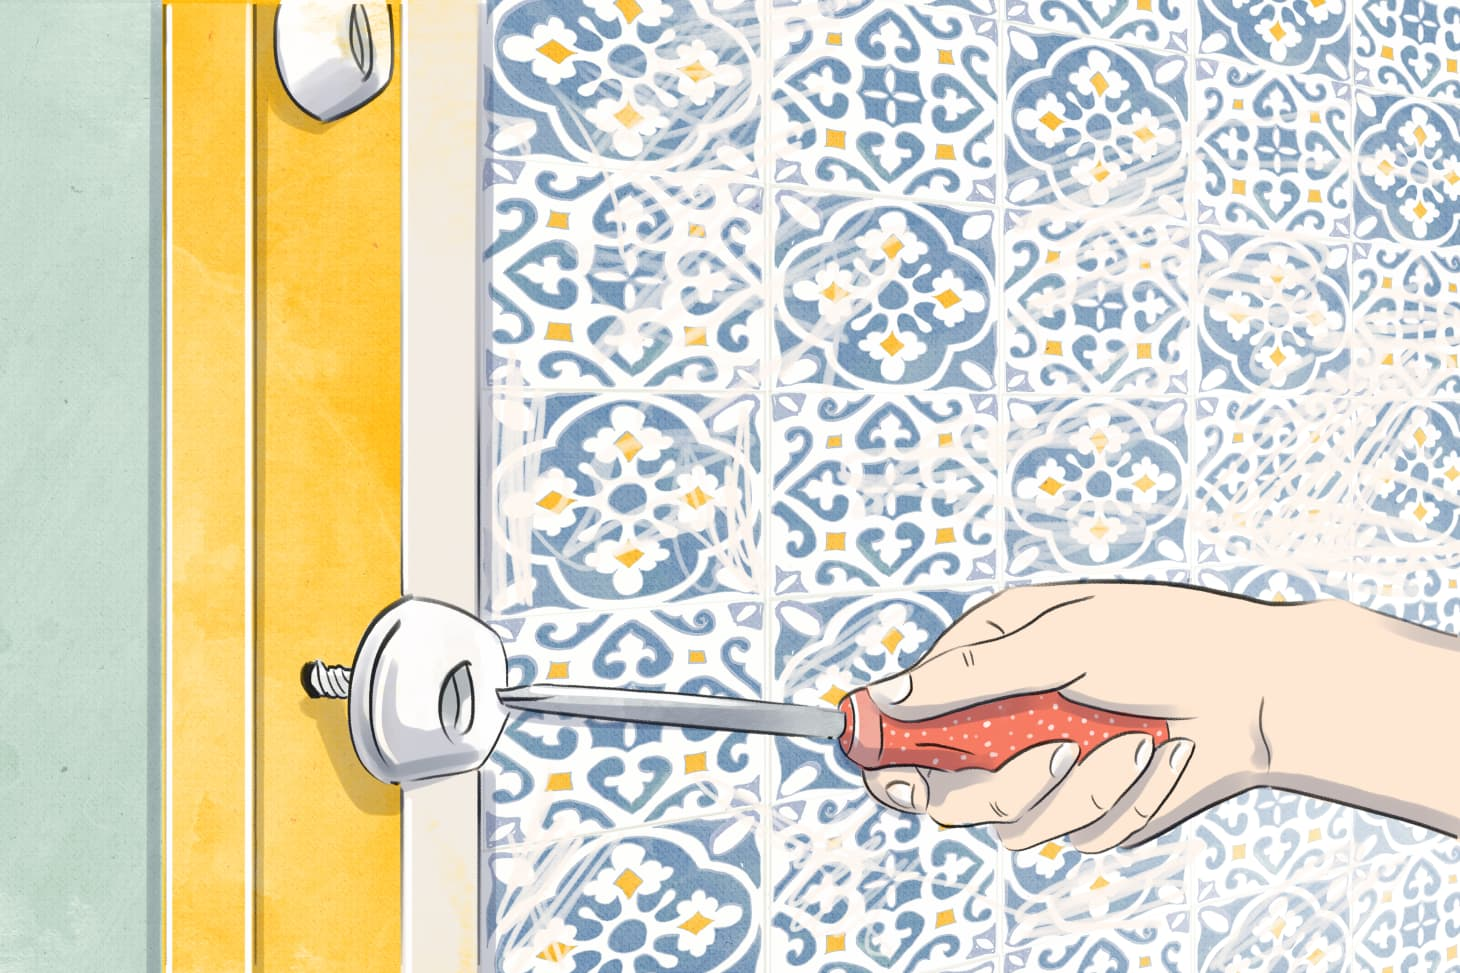 Removing Old, Bulky Shower Doors Is Much Easier Than You